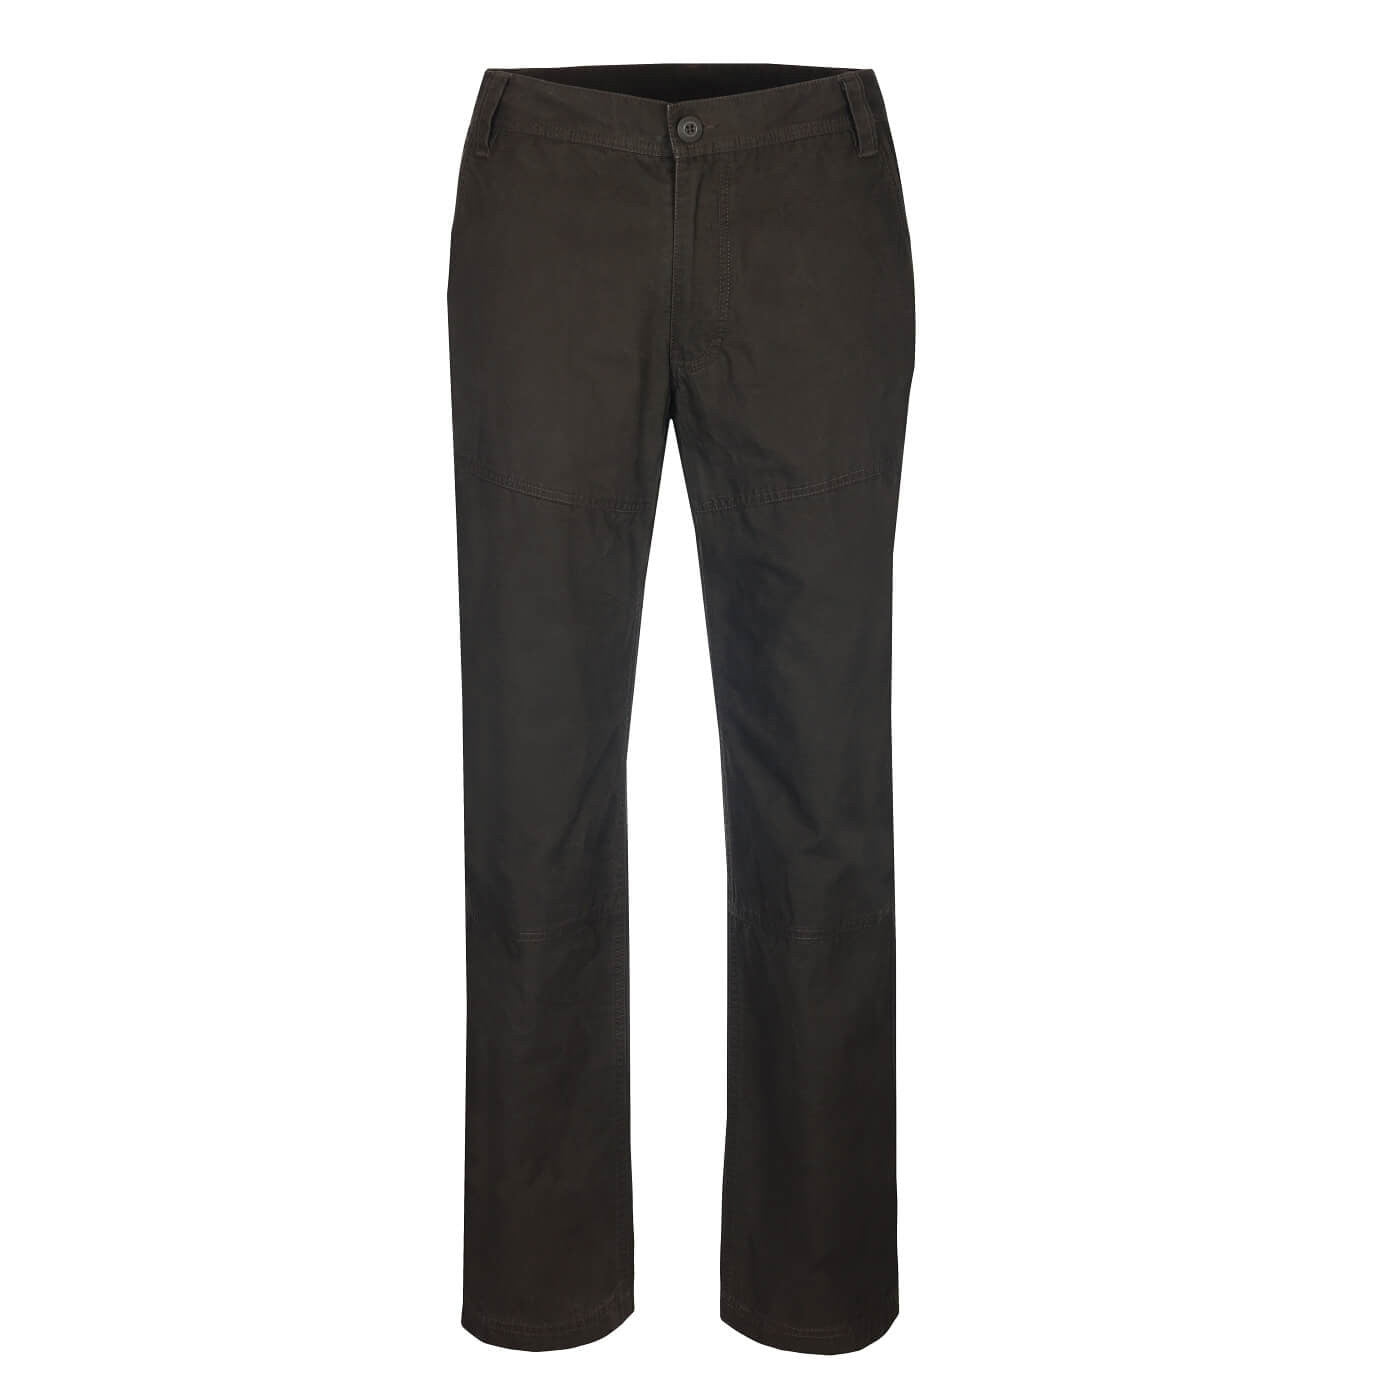 BUSHMANSHOP LICHFIELD MEN'S COTTON DURABLE PANTS